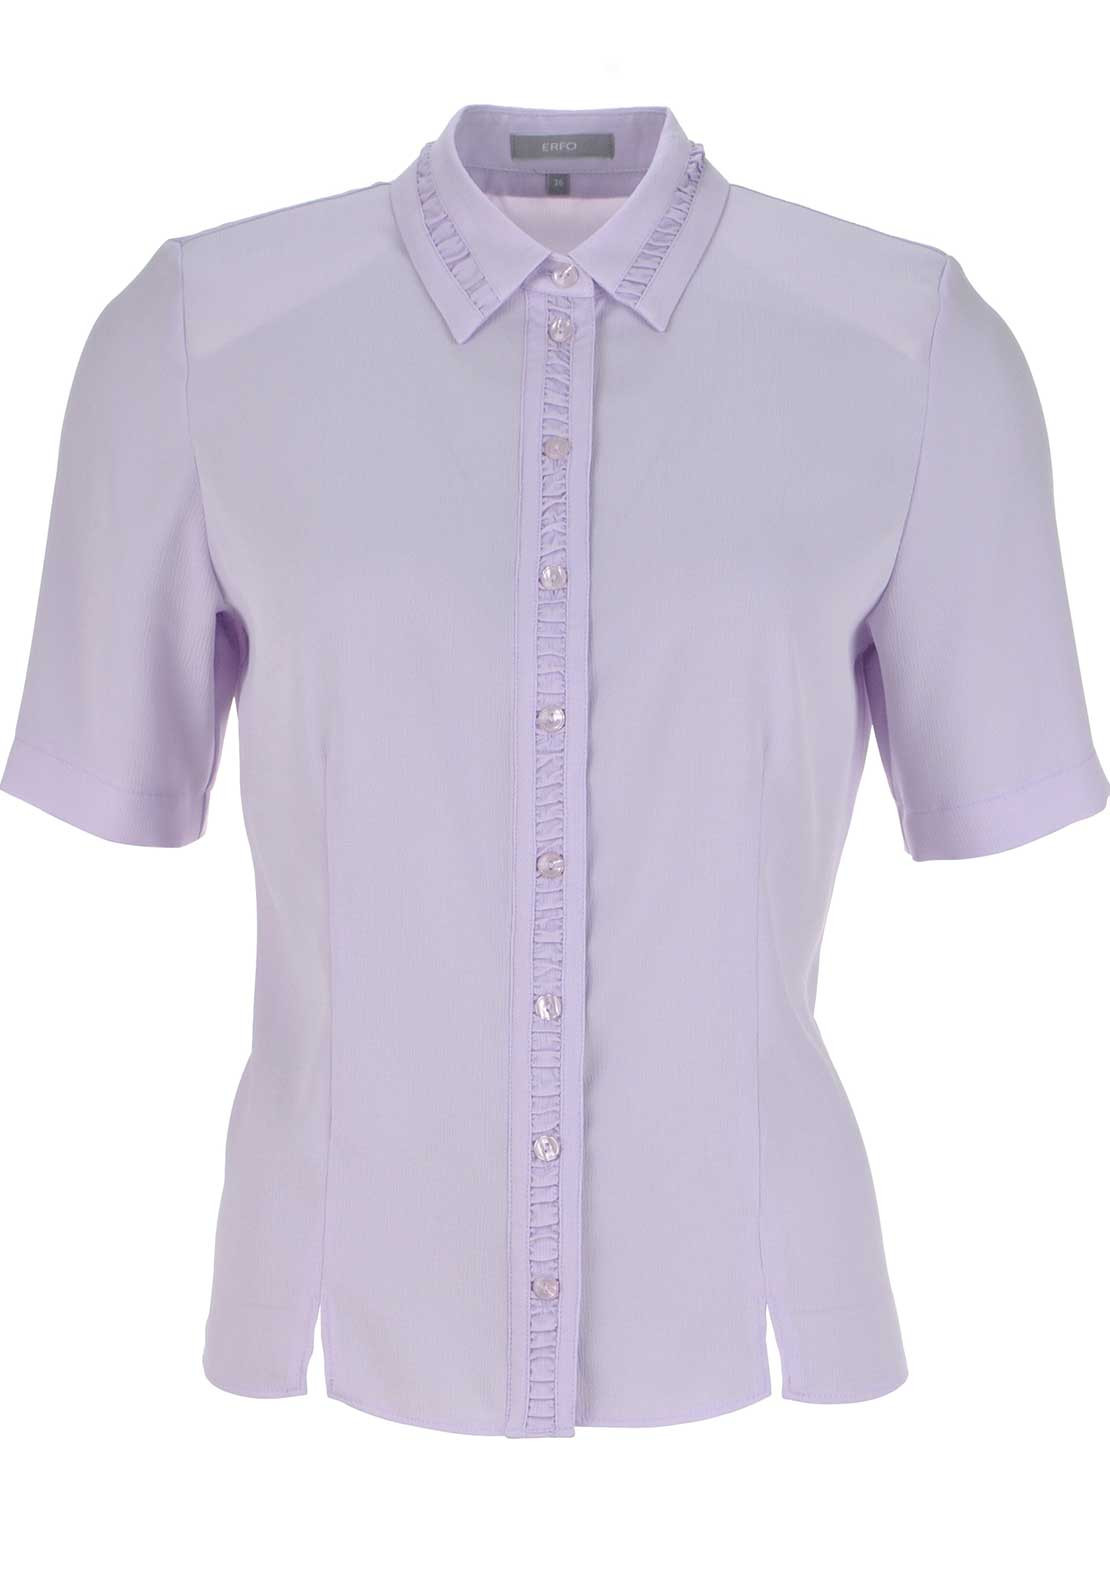 ERFO Textured Short Sleeve Blouse, Lilac